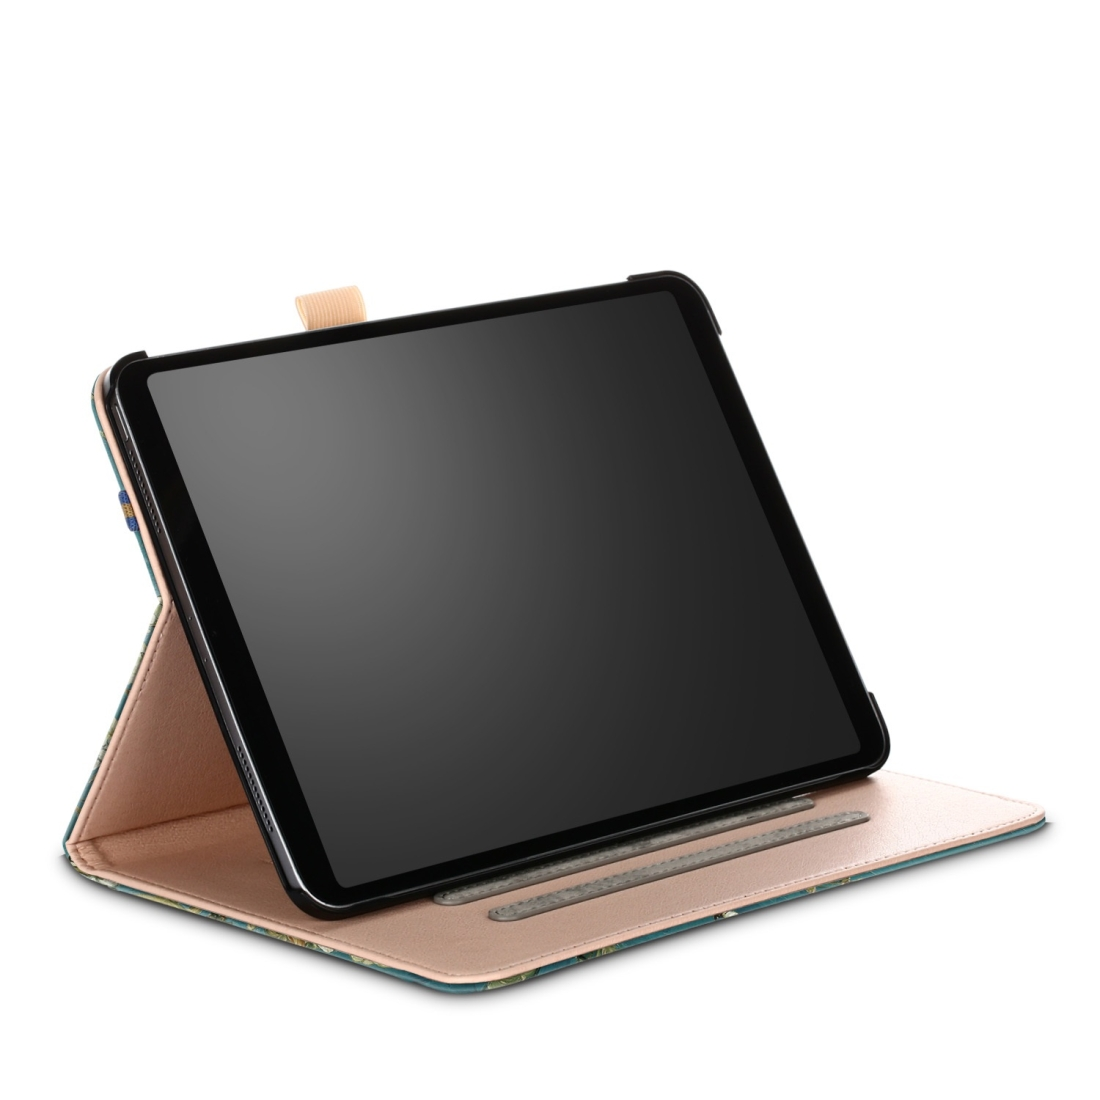 Apricot Flower Design Painted Leather iPad Pro 11 Case, with Auto Sleep